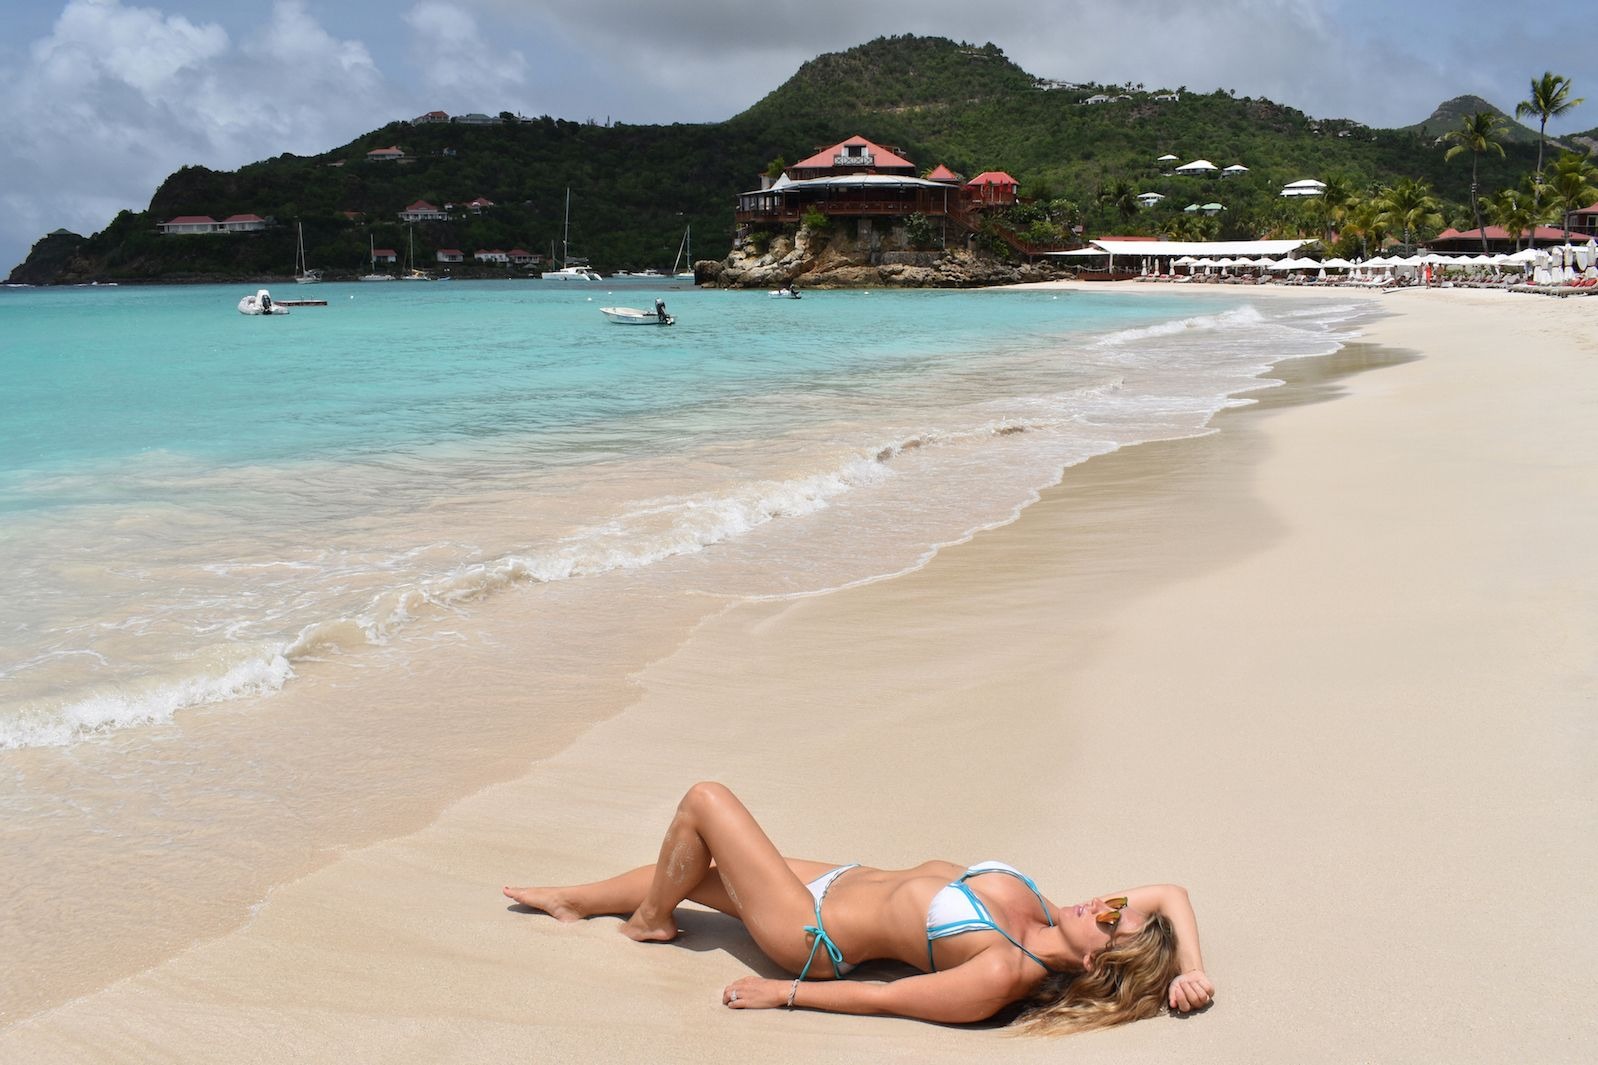 PARADISE FOUND AT HOTEL EMERAUDE PLAGE IN ST BARTHS | St. Barth\'s ...